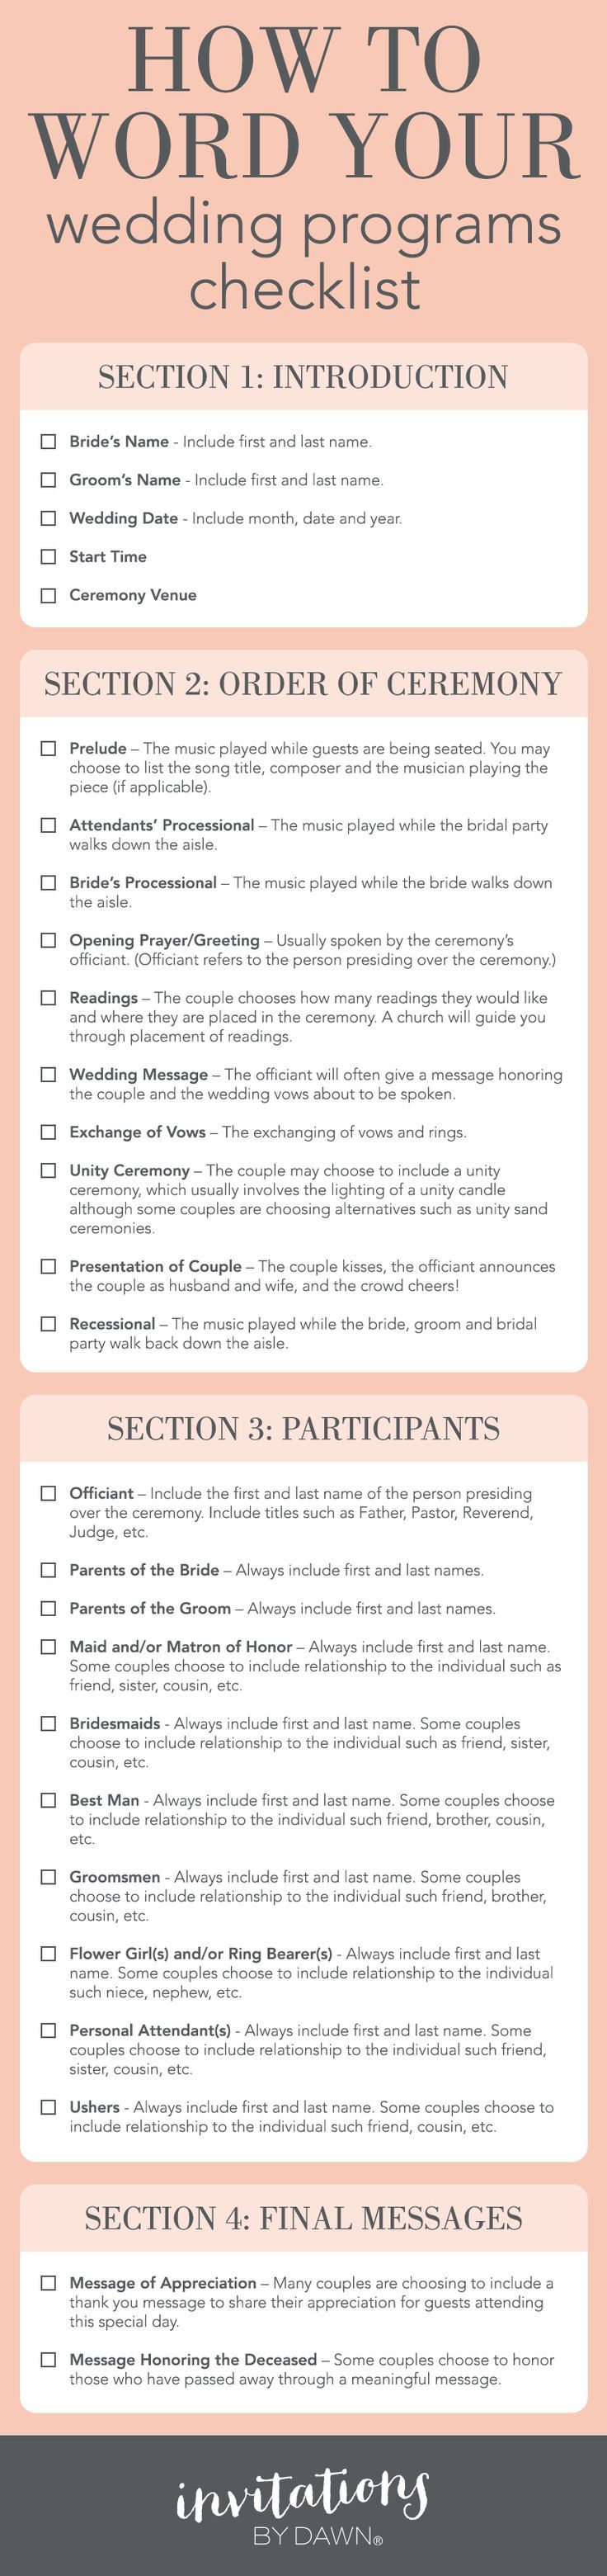 a checklist how to word your wedding programs wedding hacks and